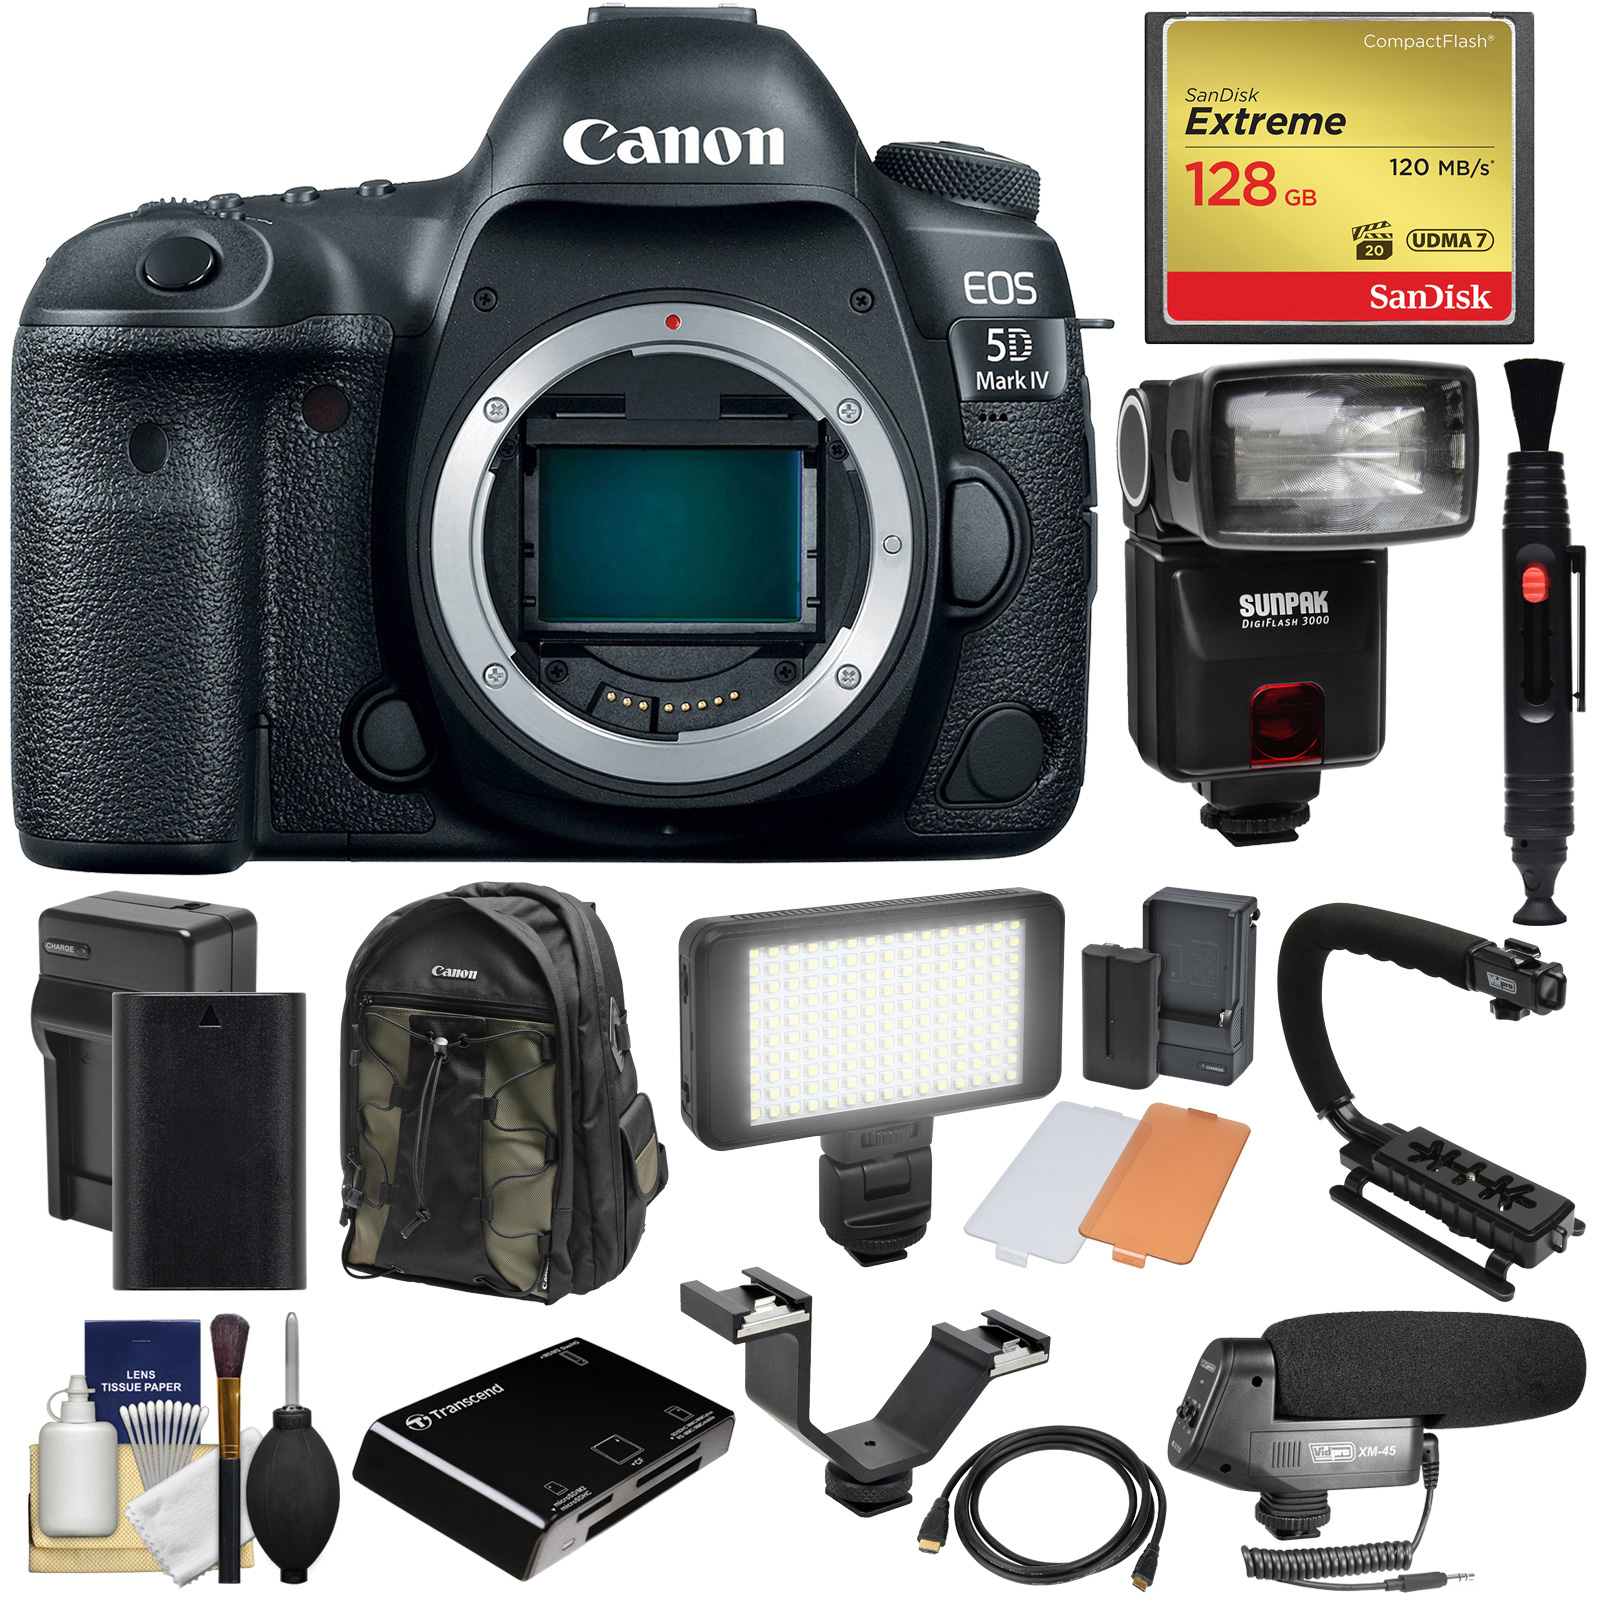 Canon EOS 5D Mark IV 4K Wi-Fi Digital SLR Camera Body with 128GB CF Card + Battery & Charger + Backpack +... by Canon